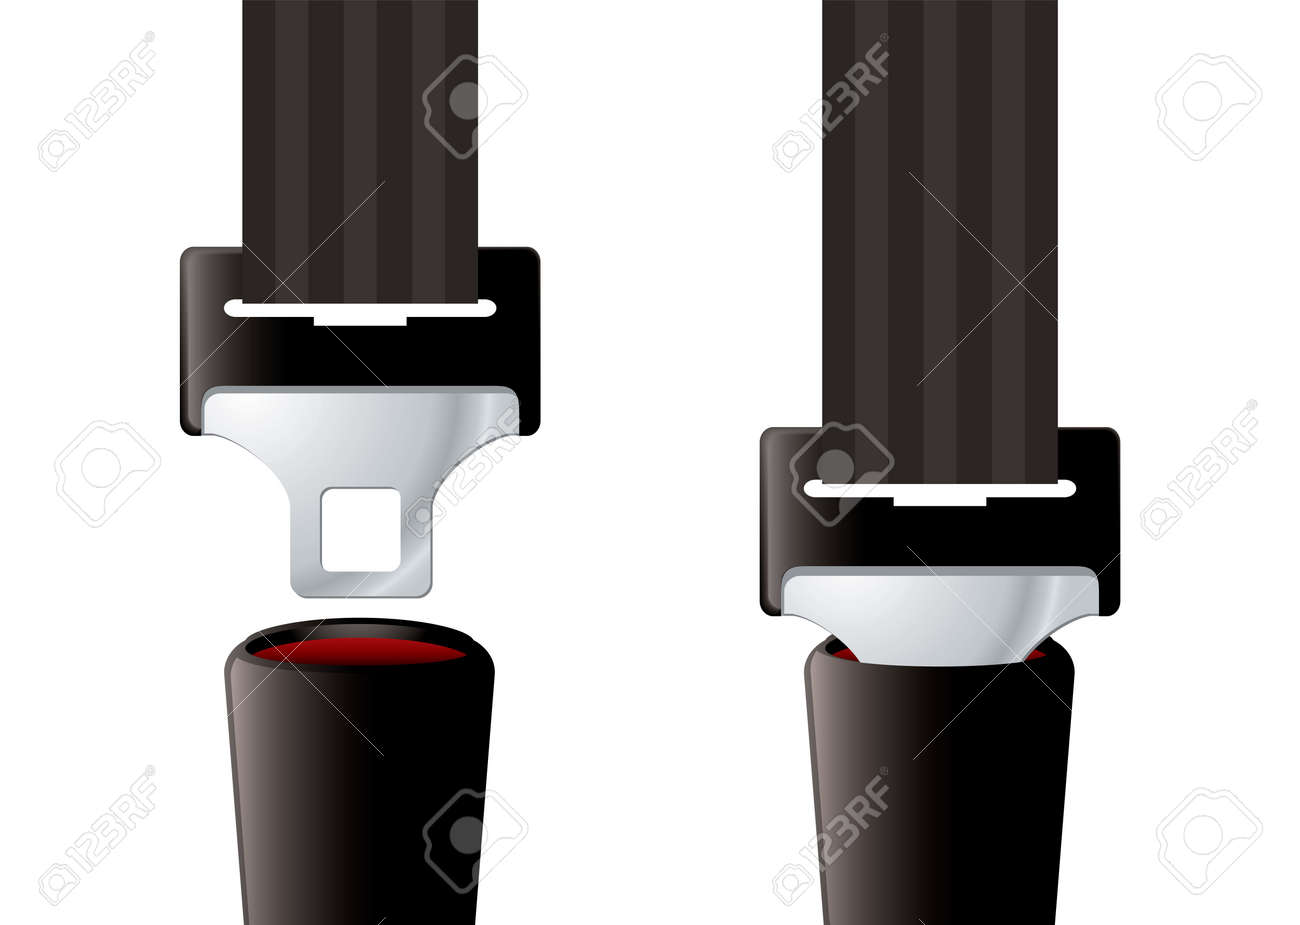 Safety auto seat belt inserted and open - 9923787